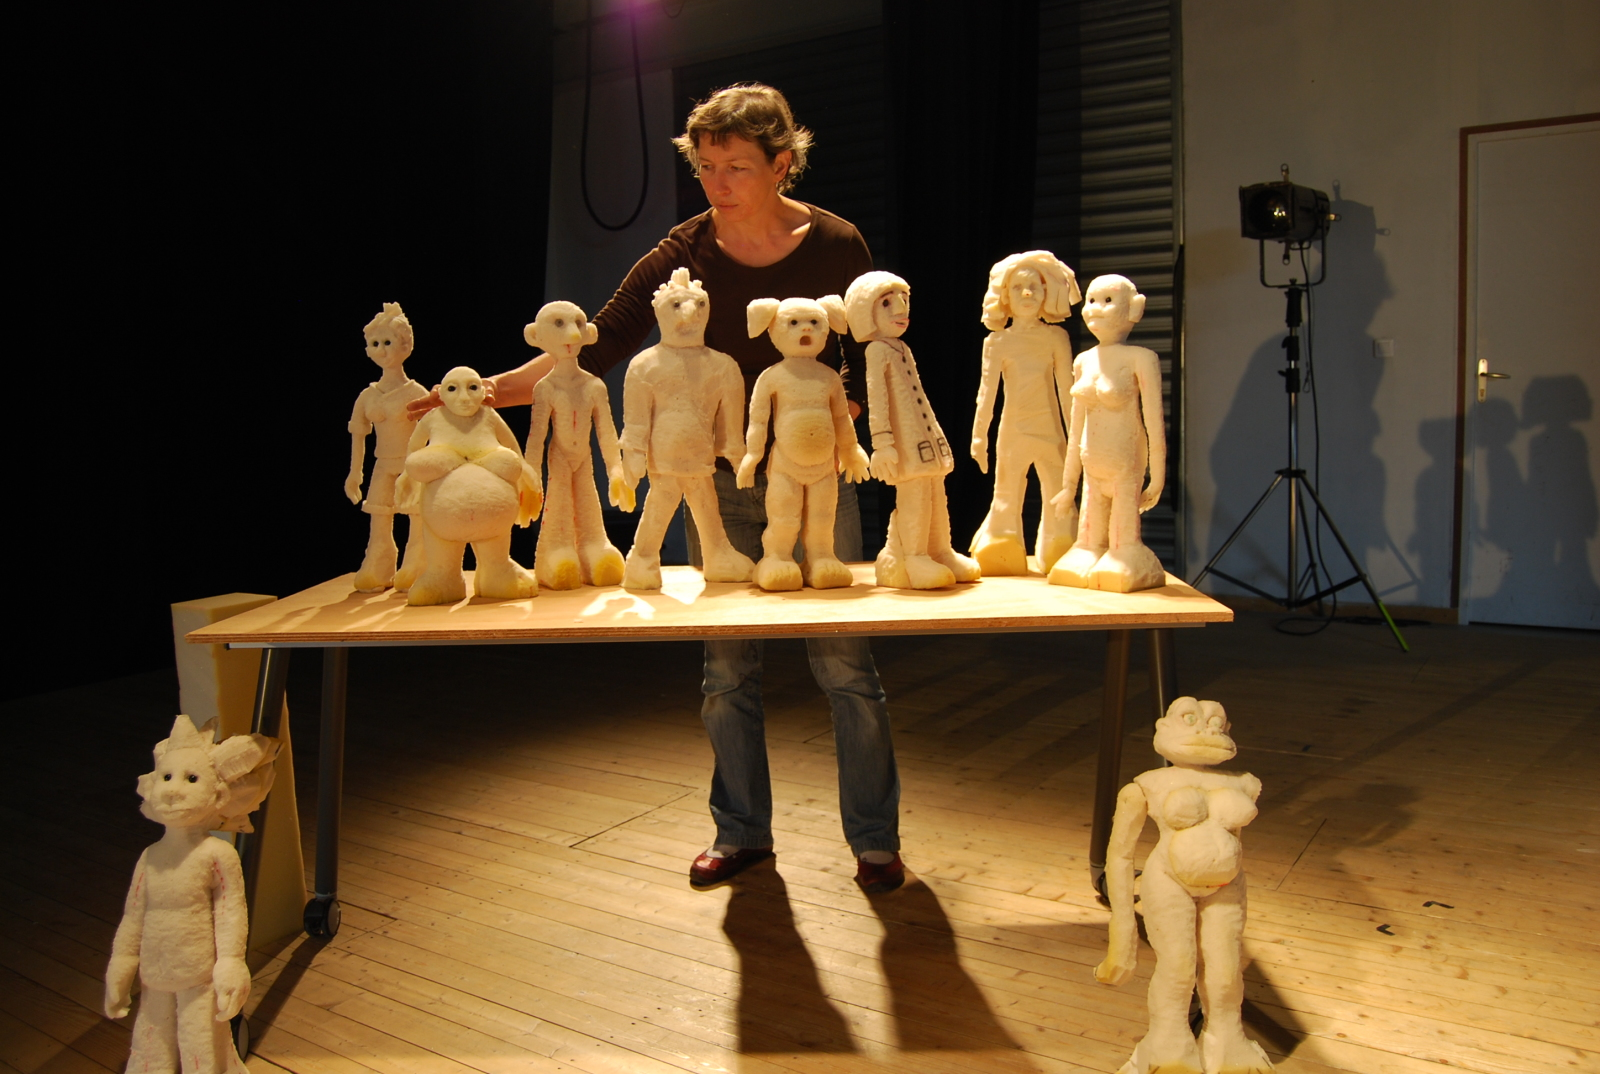 stage : Fabrication et manipulation d'une marionnette en mousse - La Nef - Manufacture d'utopies